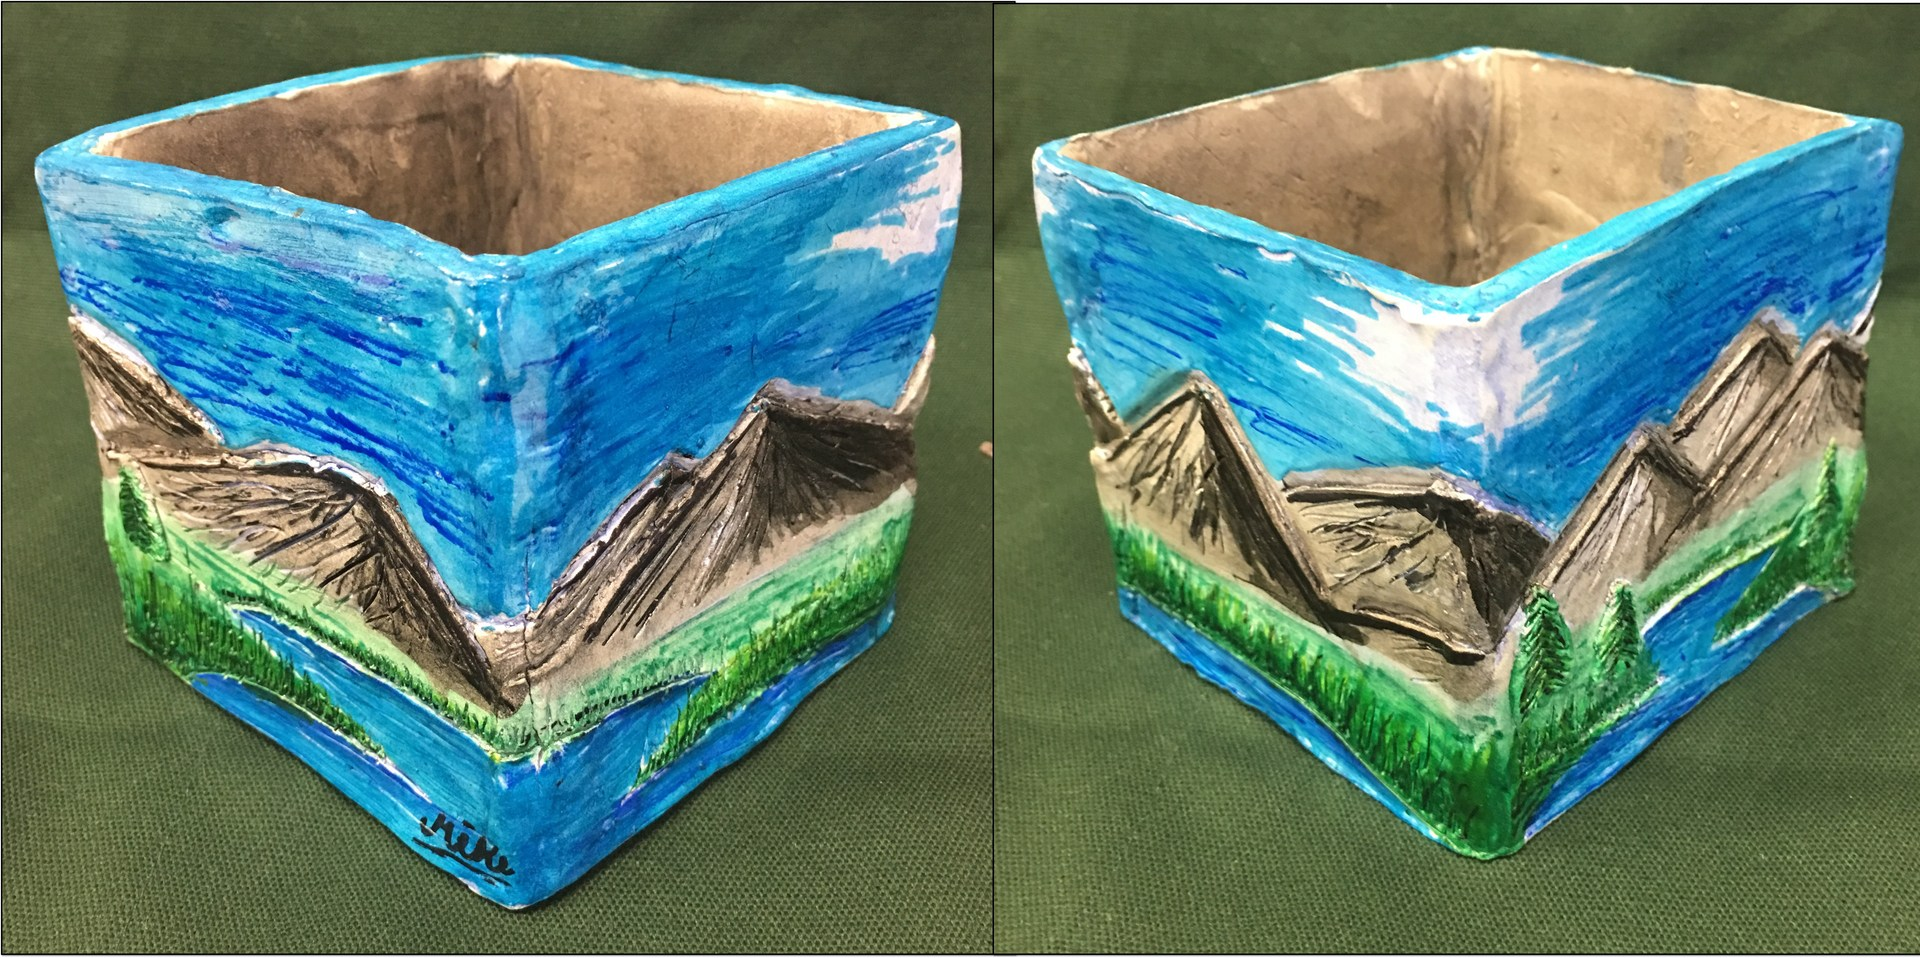 clay box with mountains painted on it